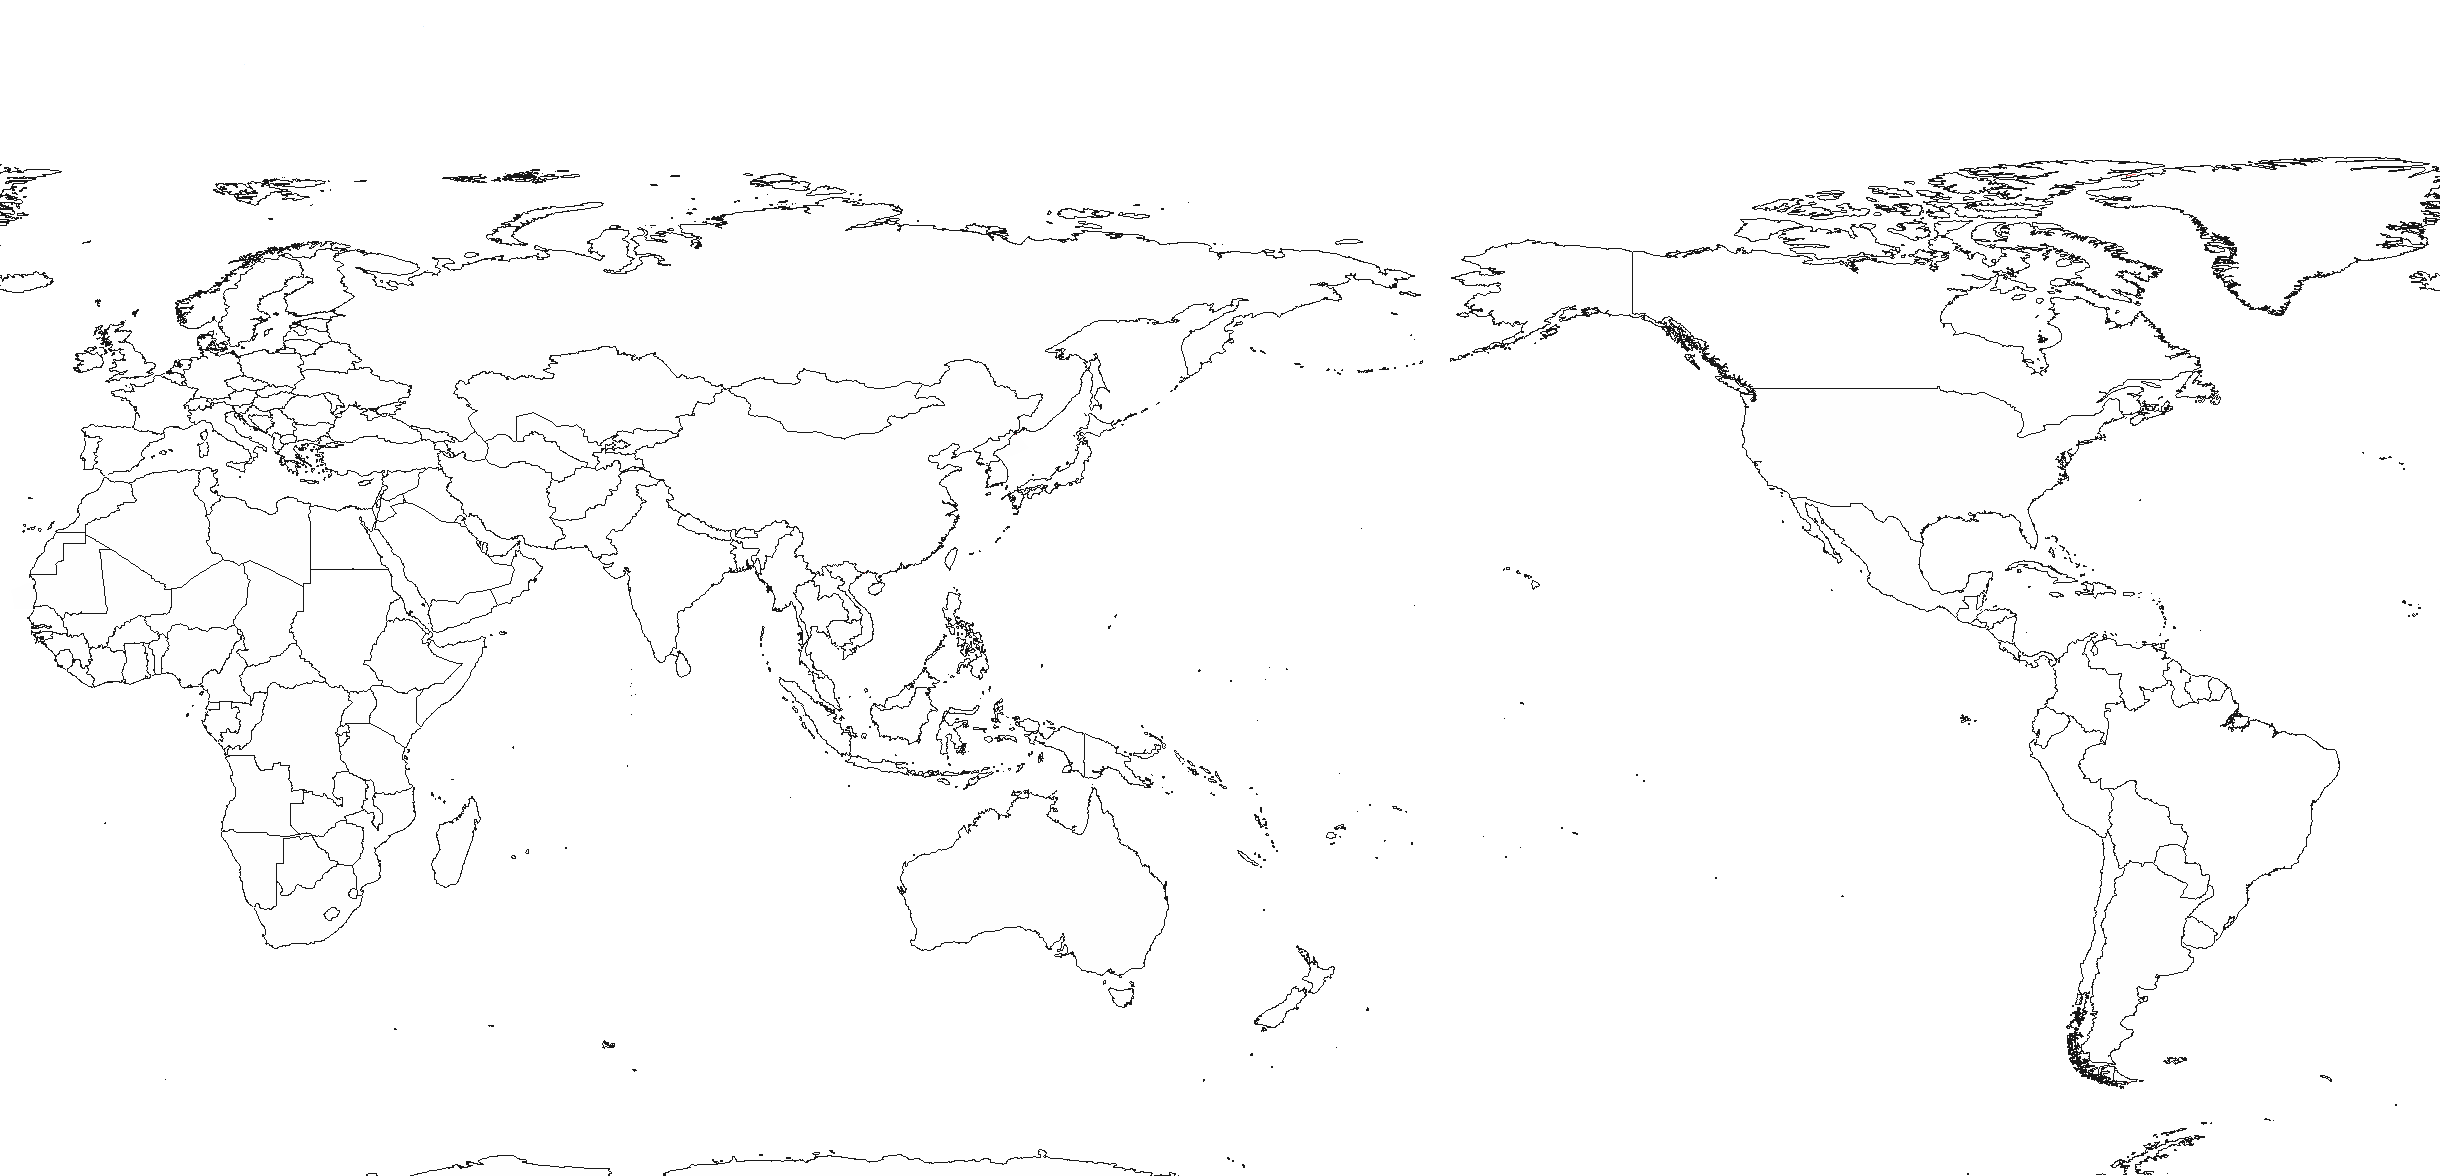 Filewhite world mappacfic centered blankg wikimedia commons filewhite world mappacfic centered blankg gumiabroncs Gallery